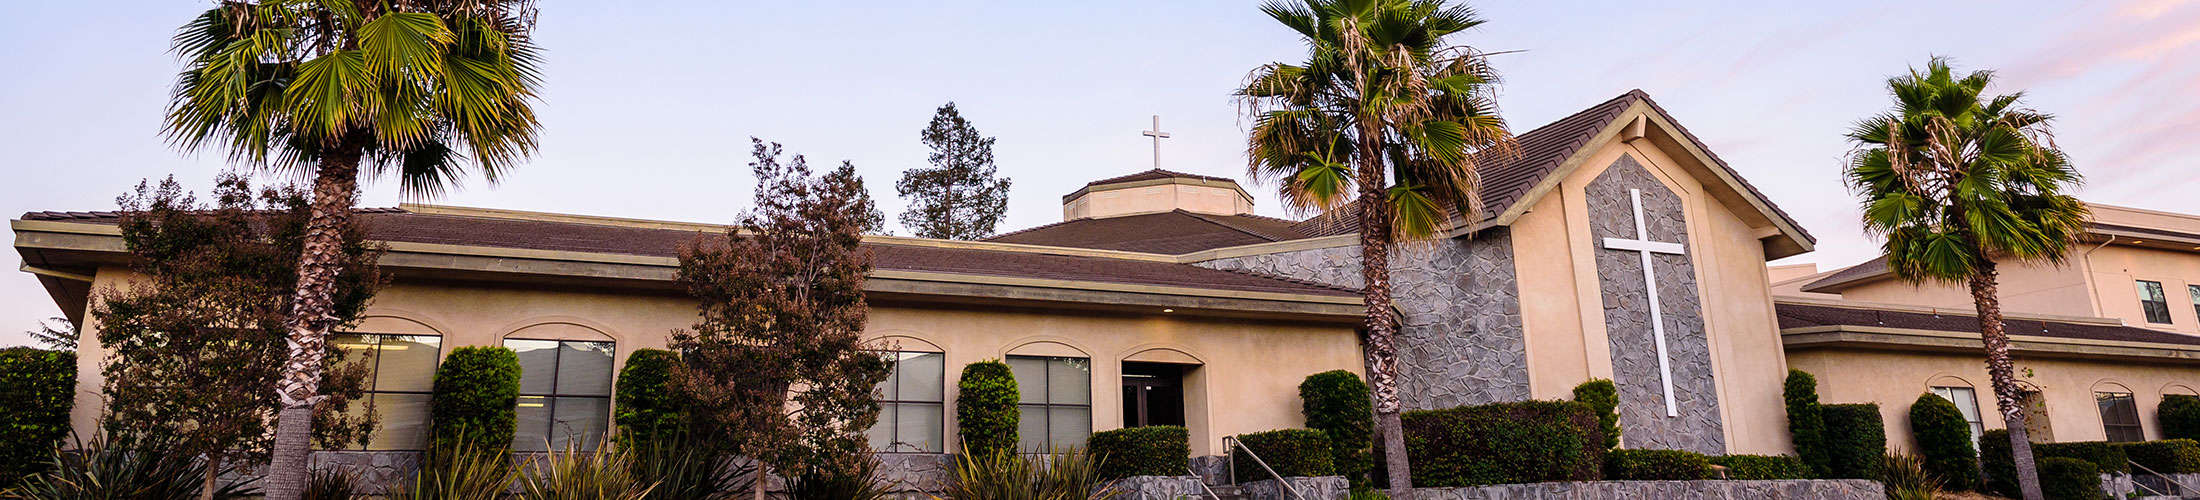 San Jose Campus Header Image